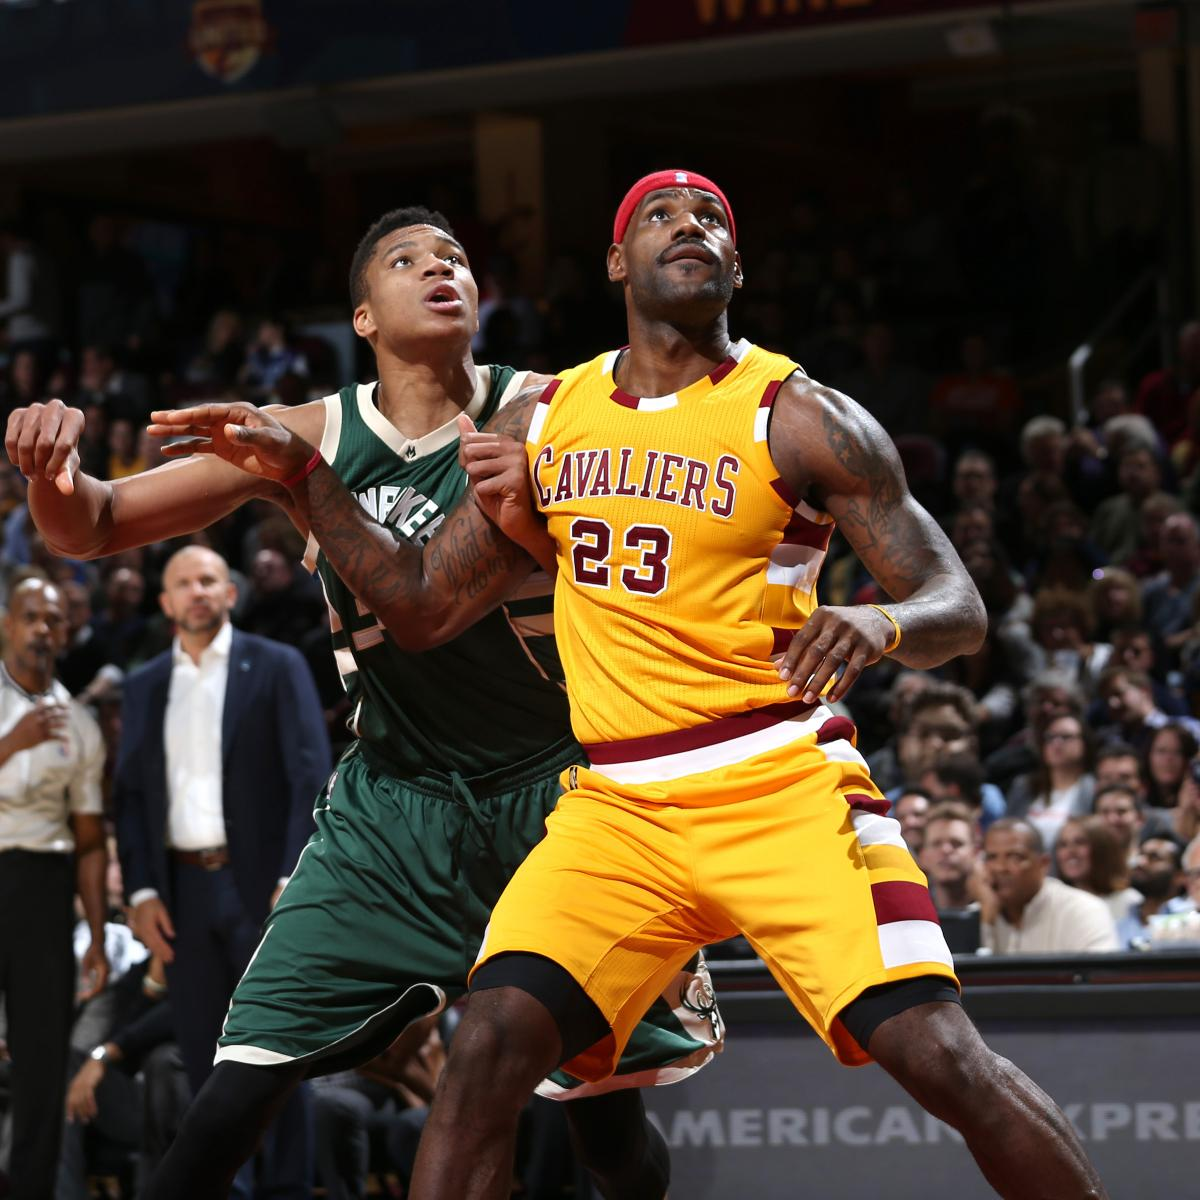 1a29cd8a9 22-Year-Old Giannis Antetokounmpo Looks a Lot Like a Young LeBron James